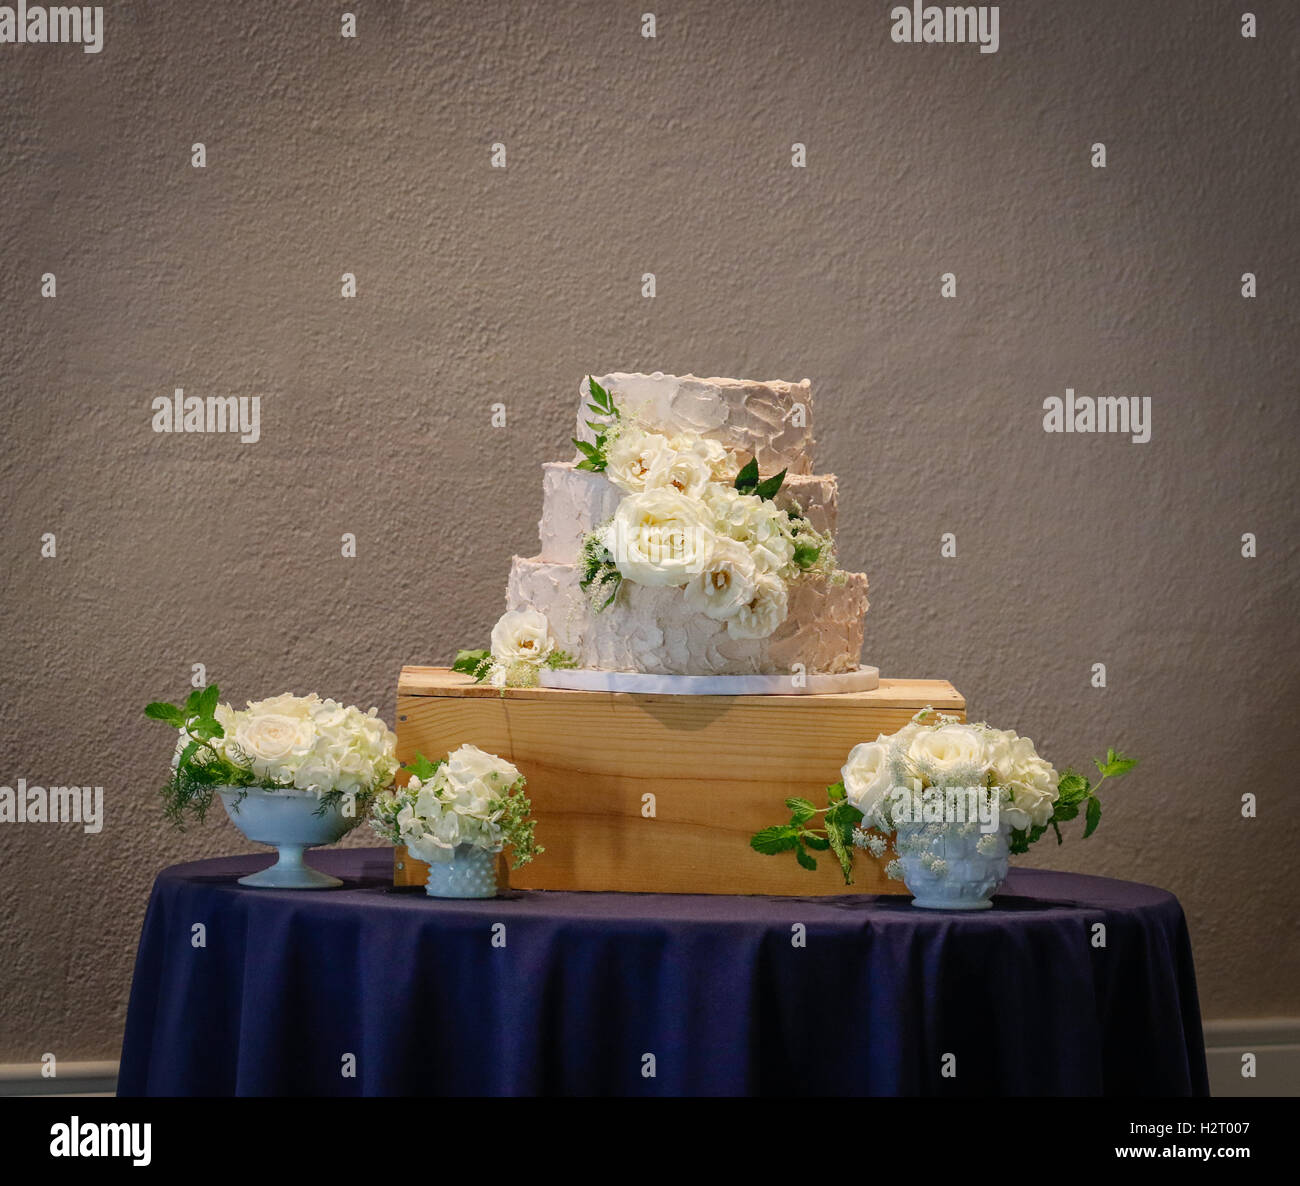 Simple white wedding cake - Stock Image